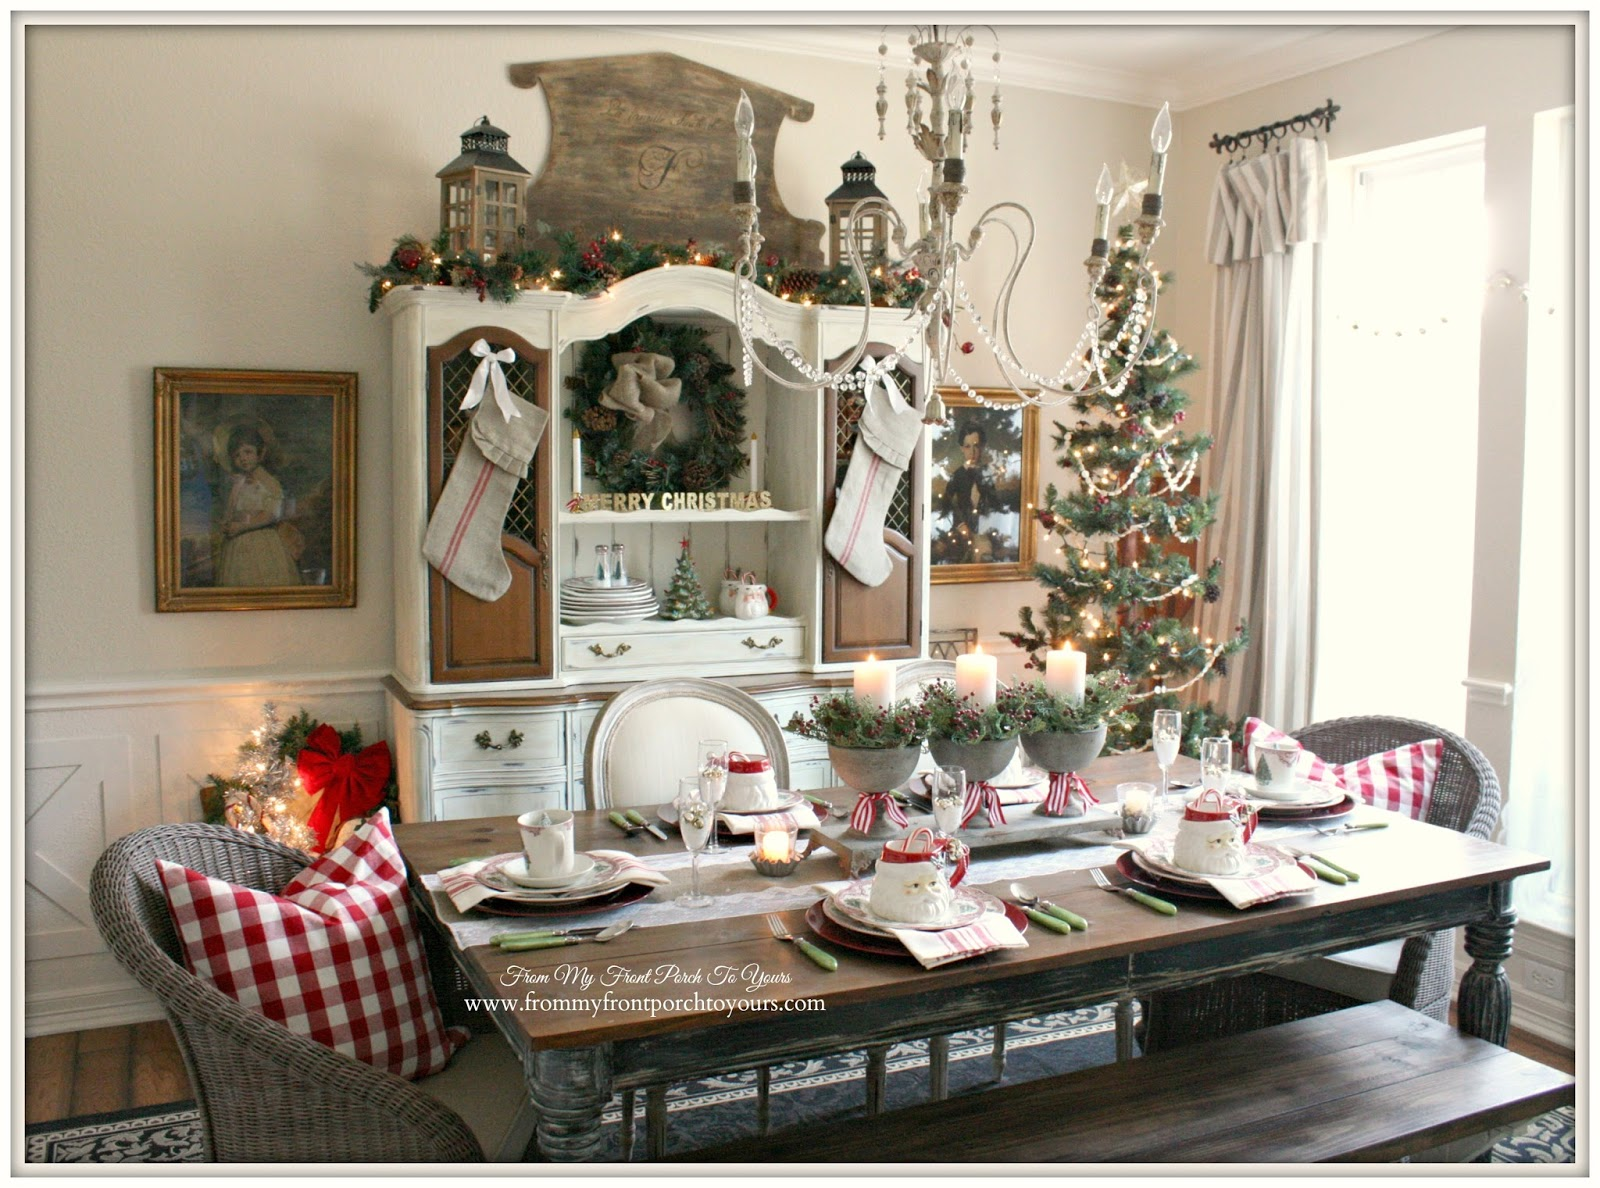 From my front porch to yours christmas dining room thru